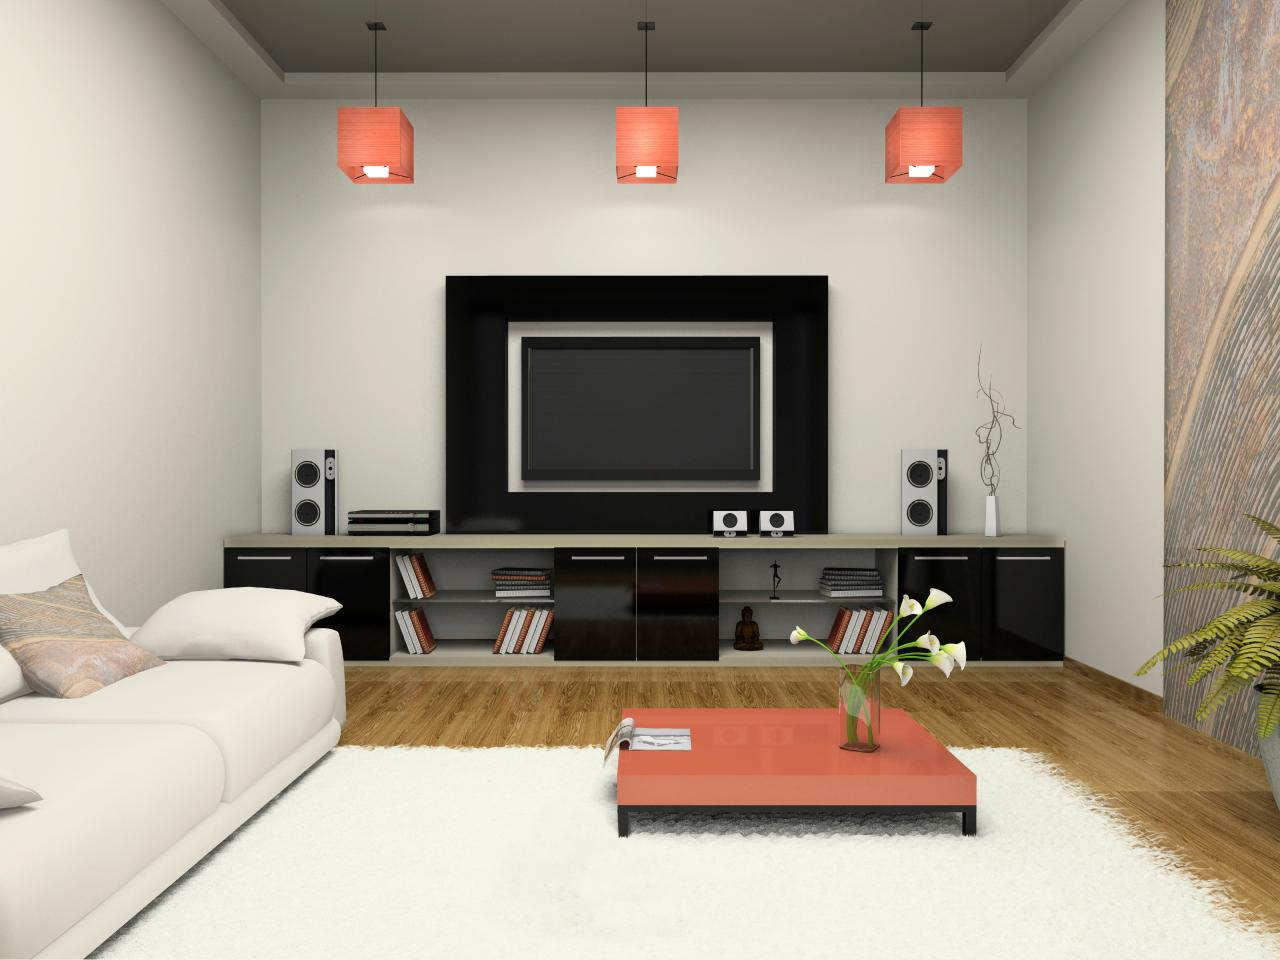 Setting up an audio system in a media room or home theater diy - Home entertainment design ...